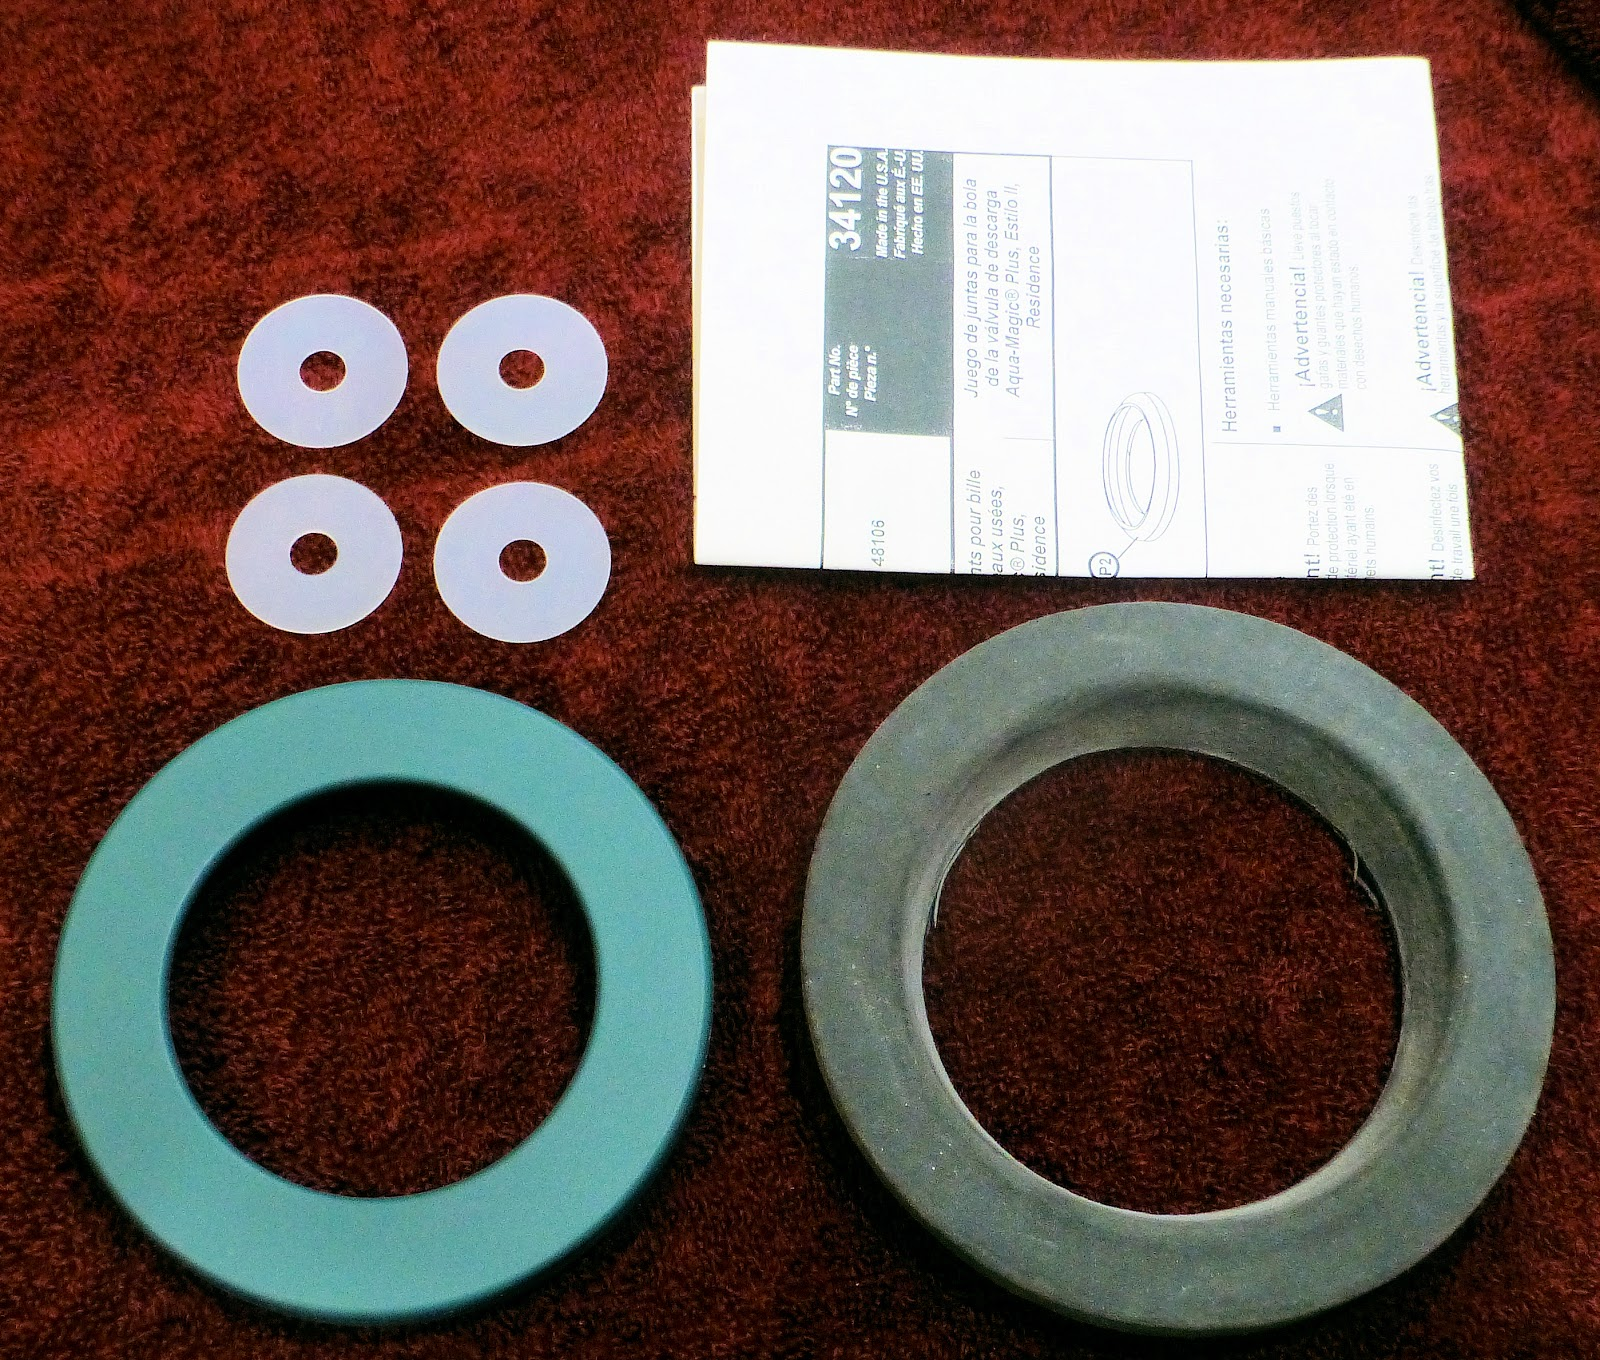 Gonebyrv Thetford Waste Ball Seal Repair Toilet Parts Breakdown Together With Rv Diagram Here Is A Picture Of The Items Included In This Kit Youll Get Instructions 4 Nylon Thin Washers Closet And Valve Bottom